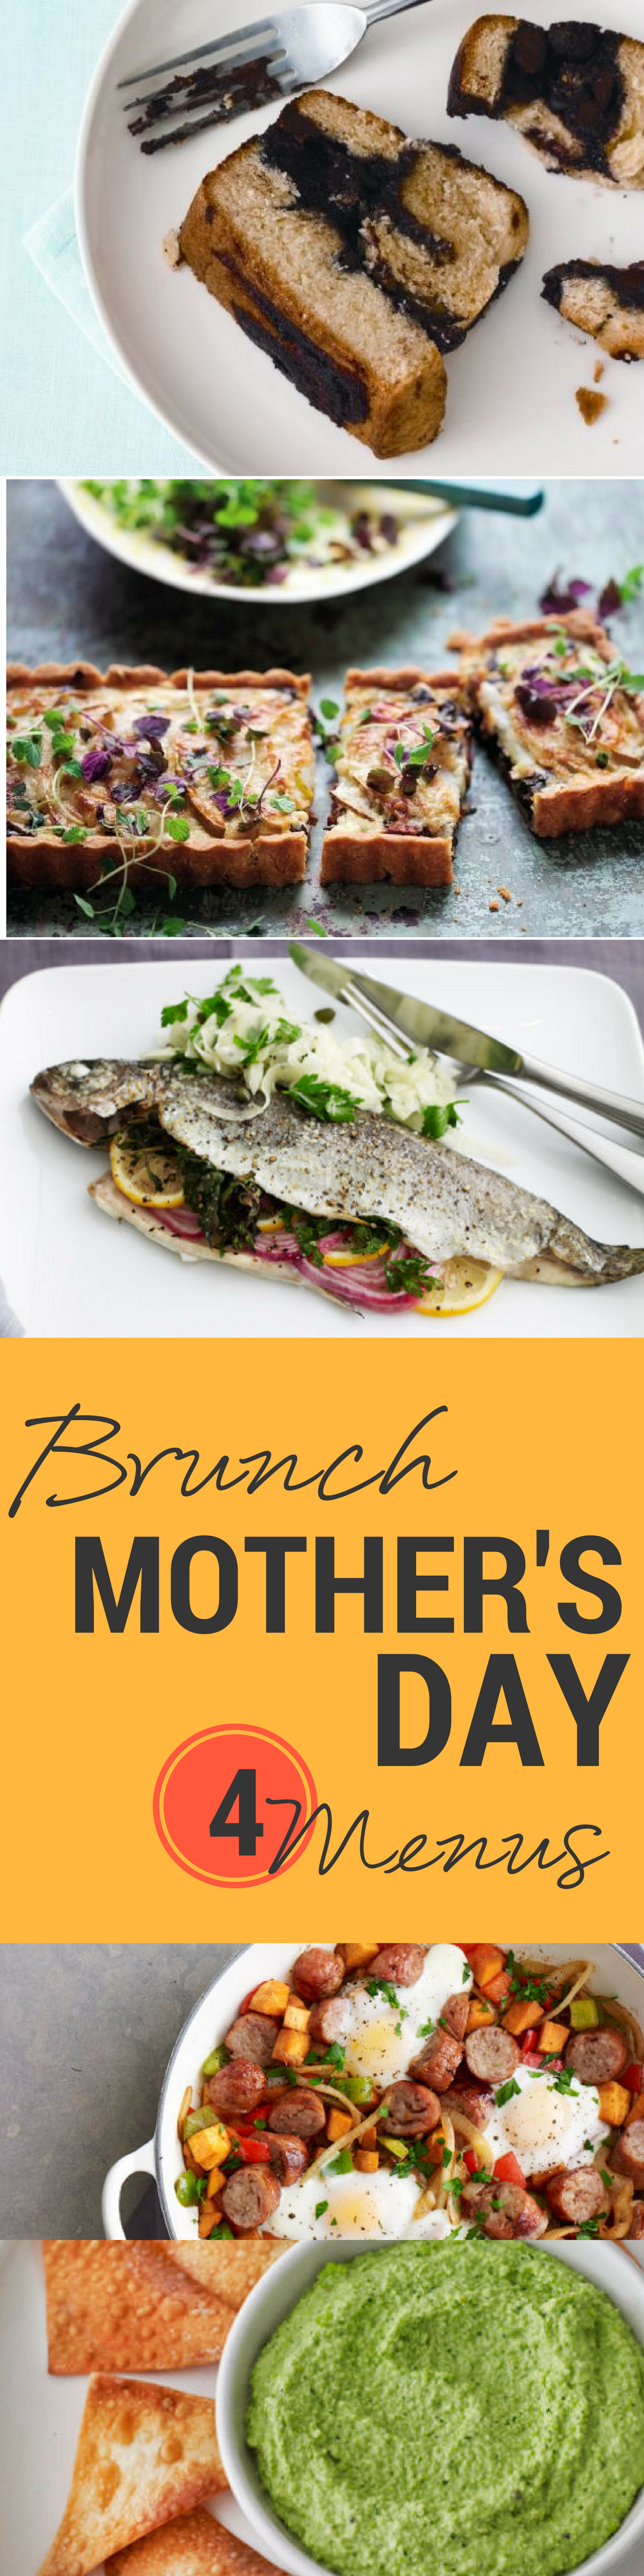 4 Mothers Day Brunch Menus Food And Drink Ideas Pinterest